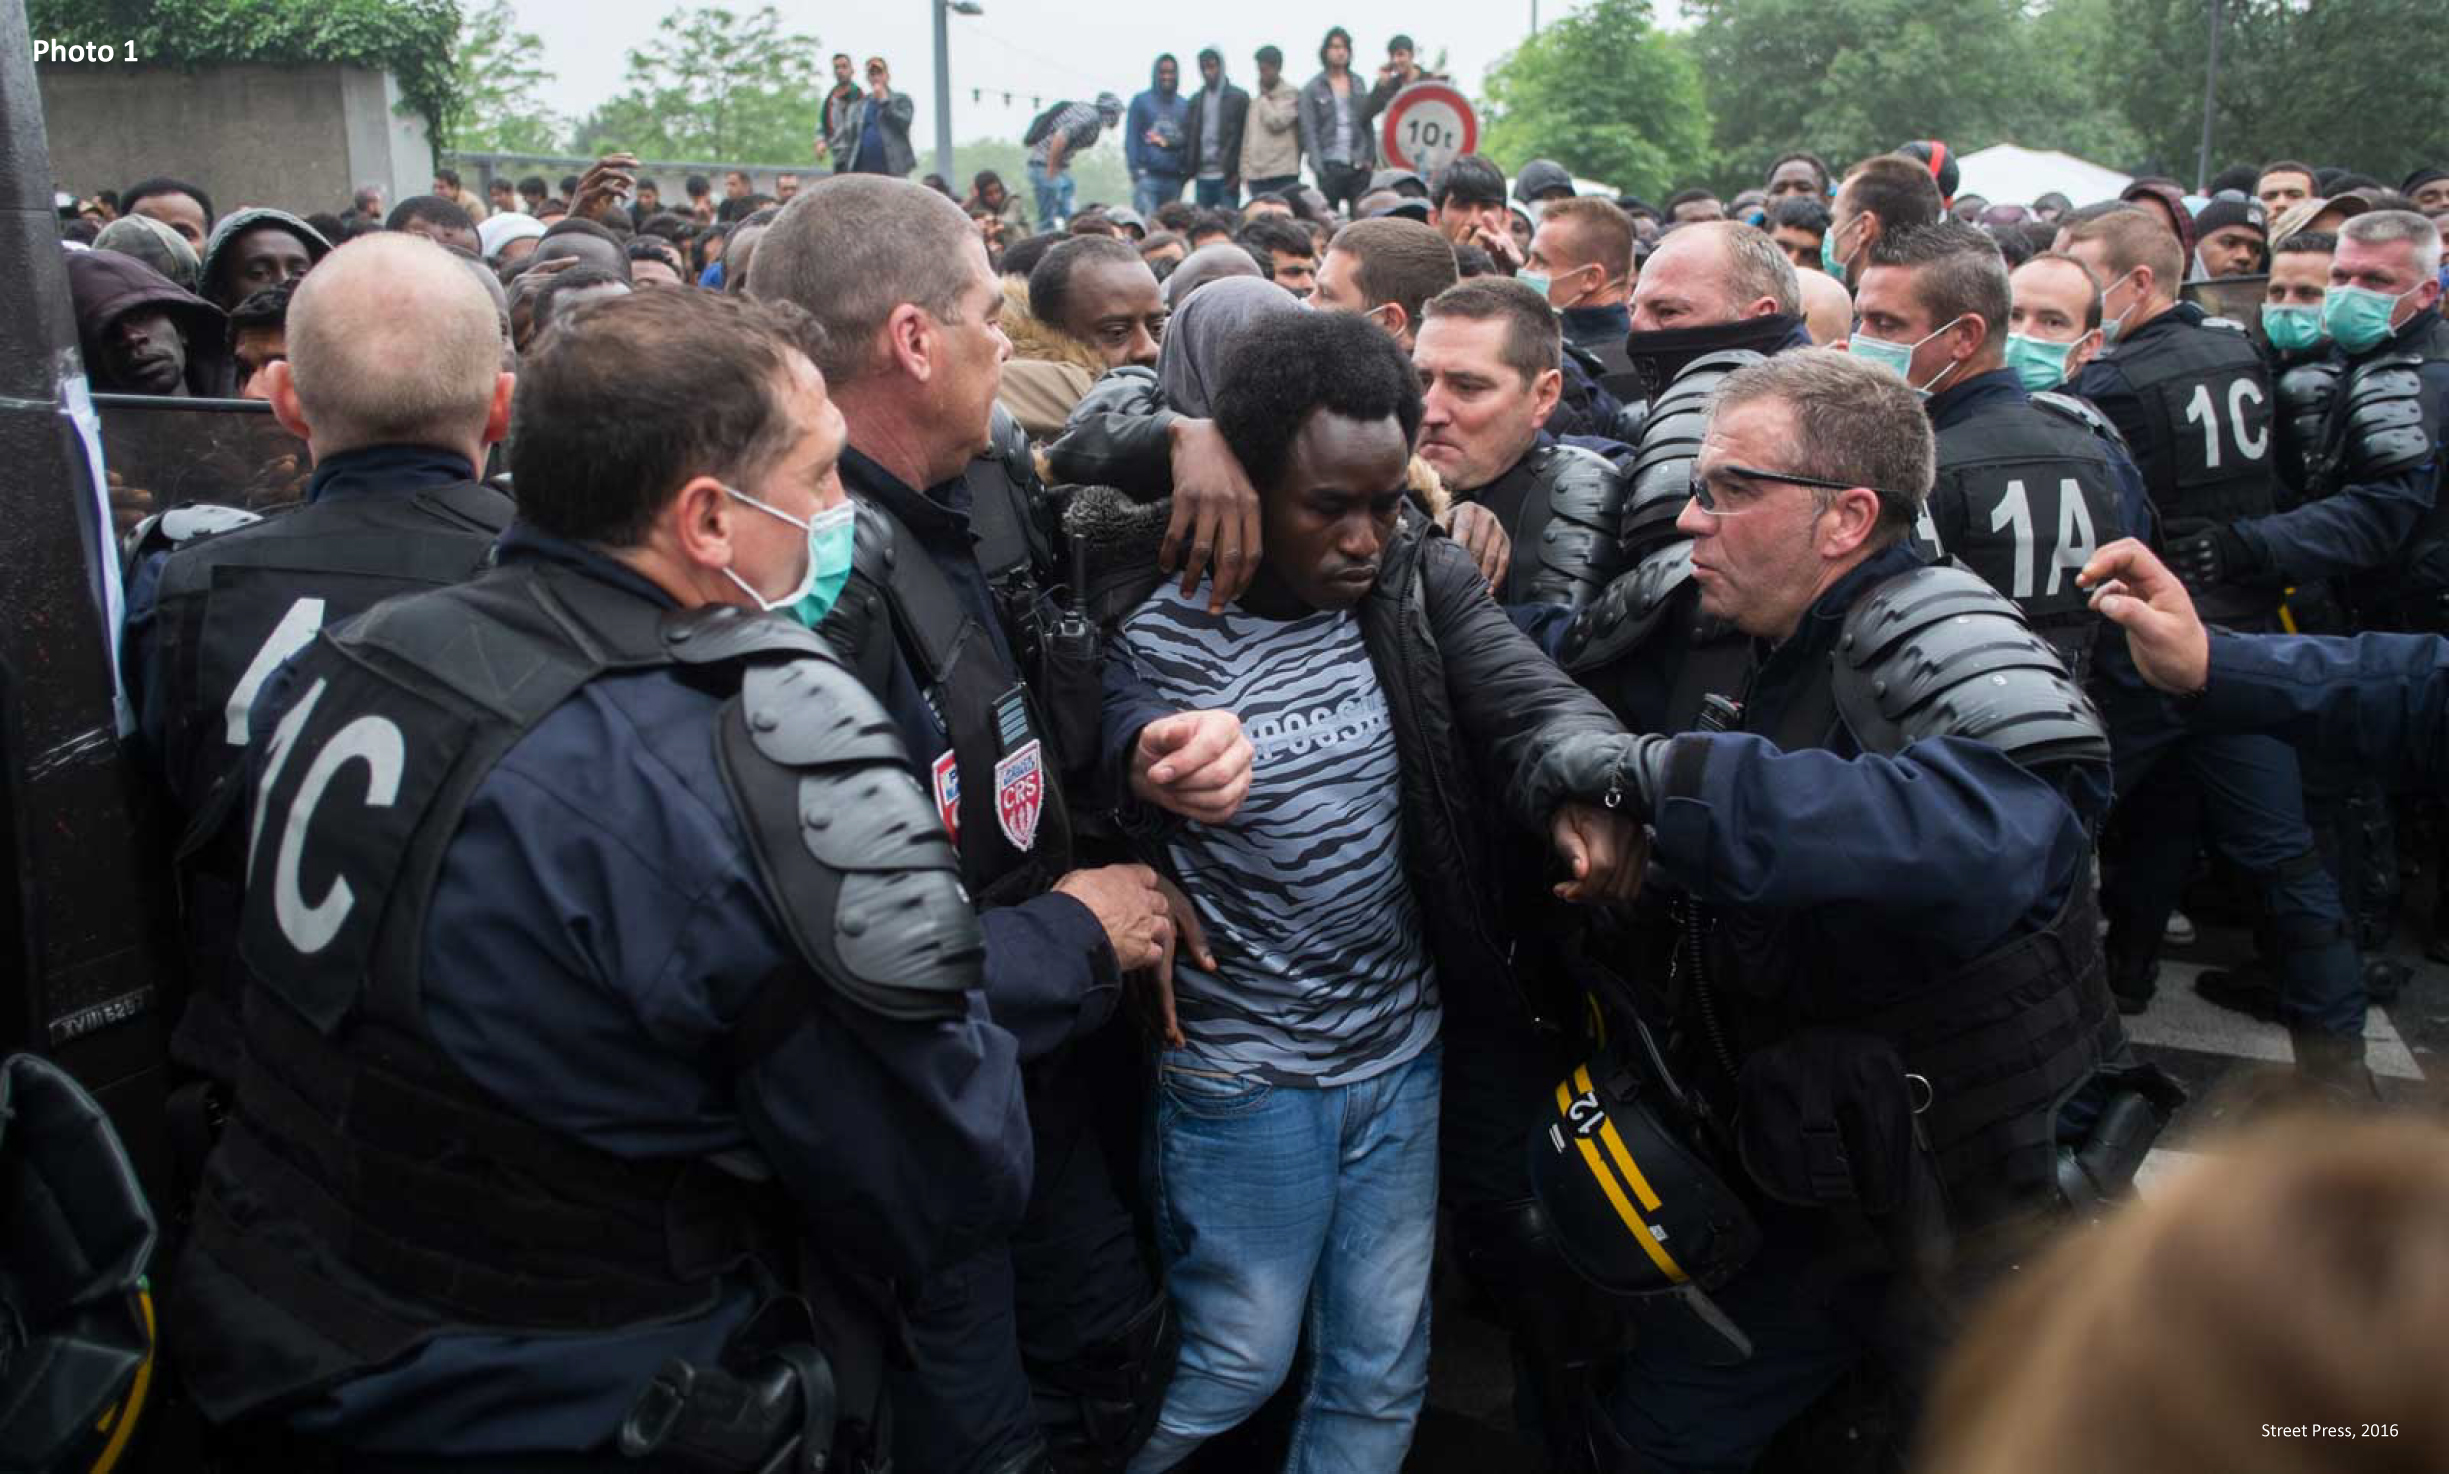 Paris, 2016 (photo 1) and 2018 (photo 2): Police forces evacuate two refugee camps of 1,300 and 1,600 people.